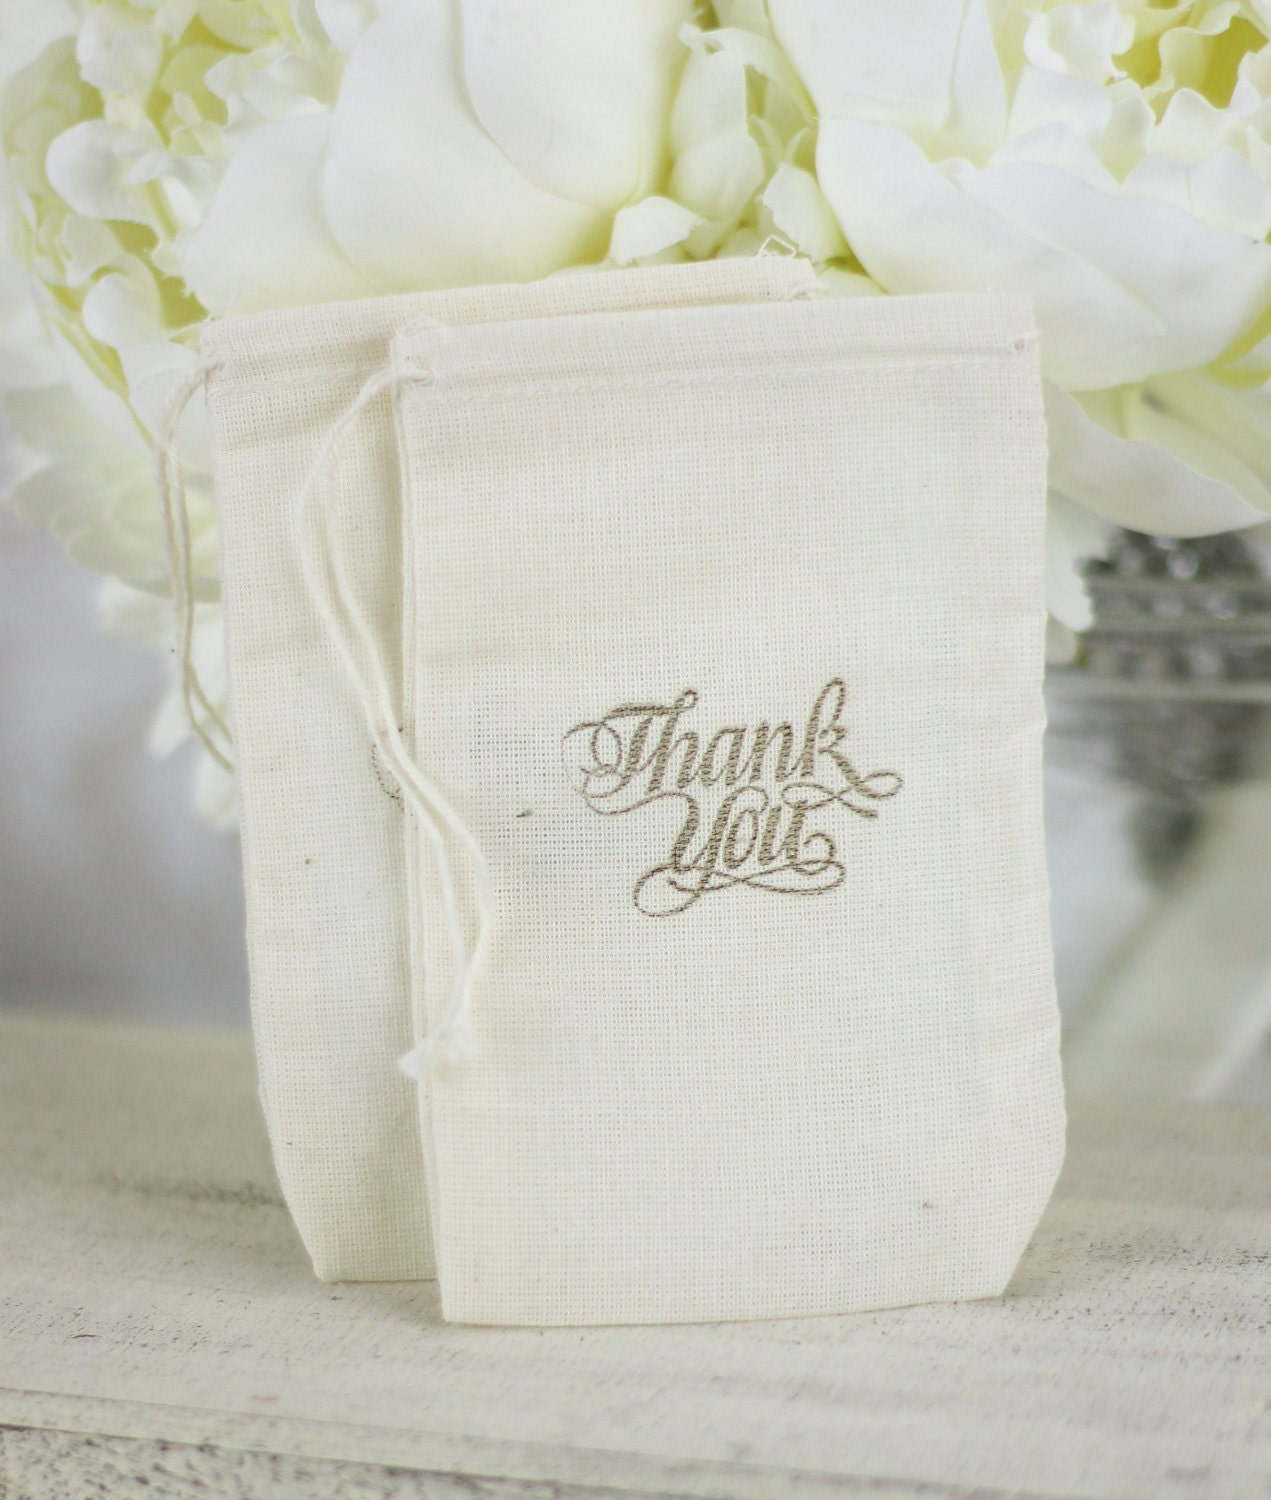 Items Similar To Rustic Wedding Favor Bags Thank You Candy Bags Dessert Bar SET Of 50 On Etsy